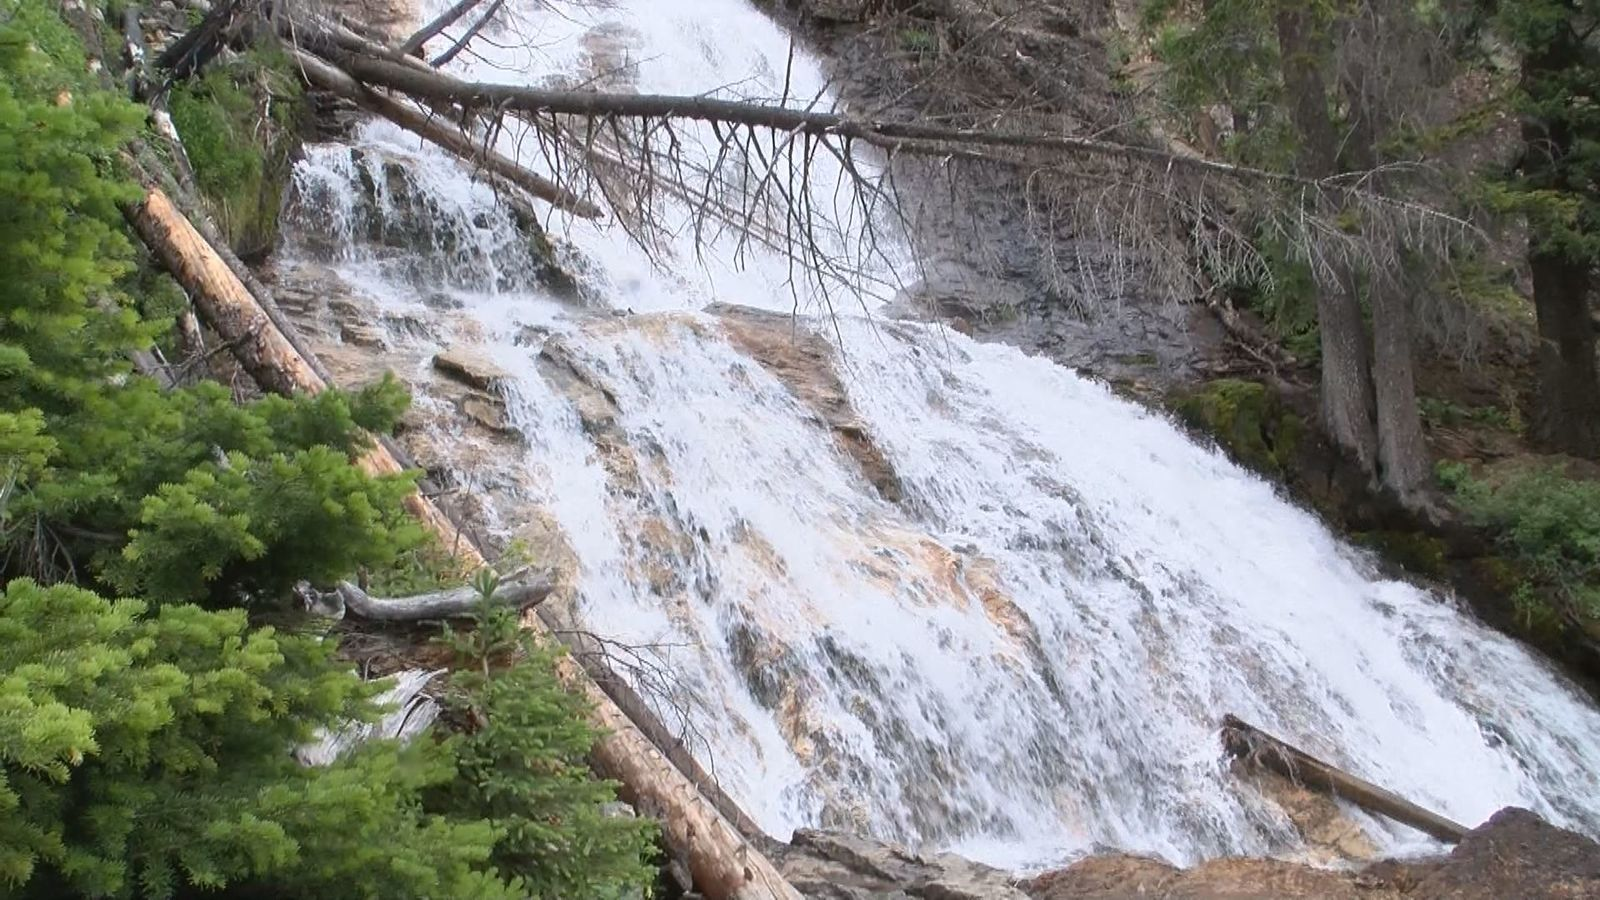 Skalkaho Pass and the its falls are spiritual spots for the Salish People. Native tribes used the trails through the Skalkaho long before a road was ever built.